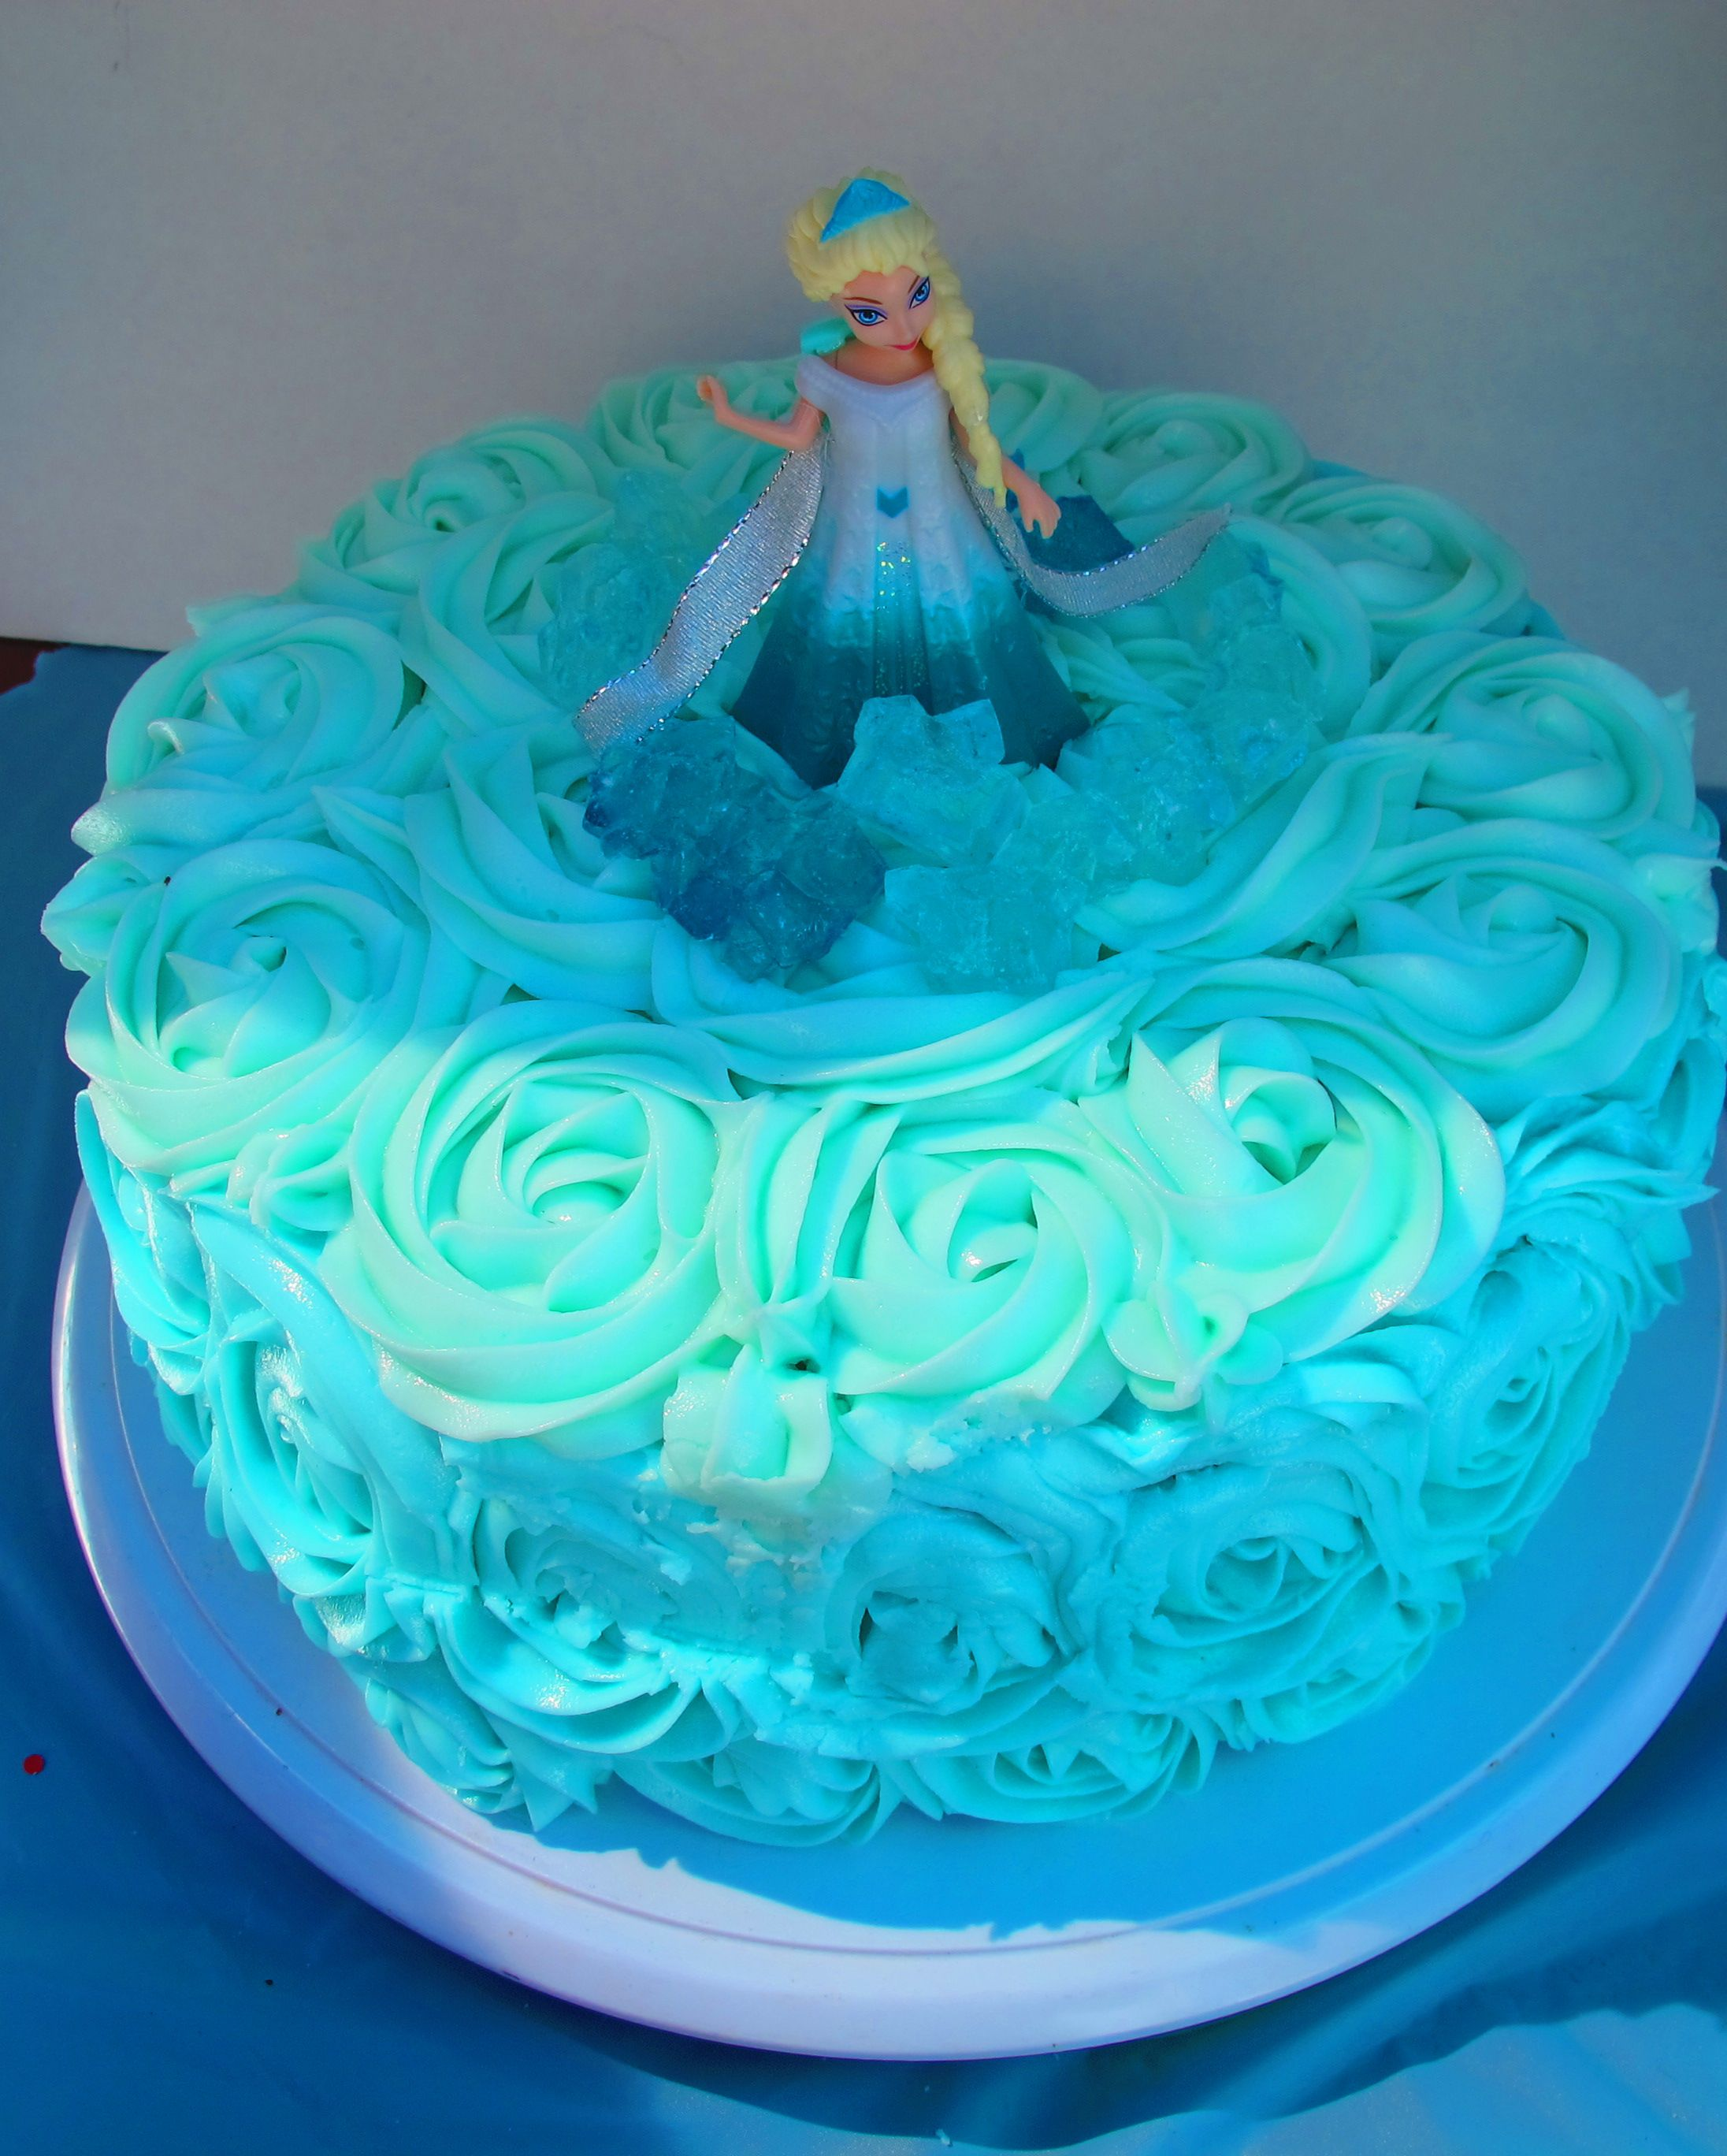 Homemade Frozen themed cake ombre style Super easy Alexis